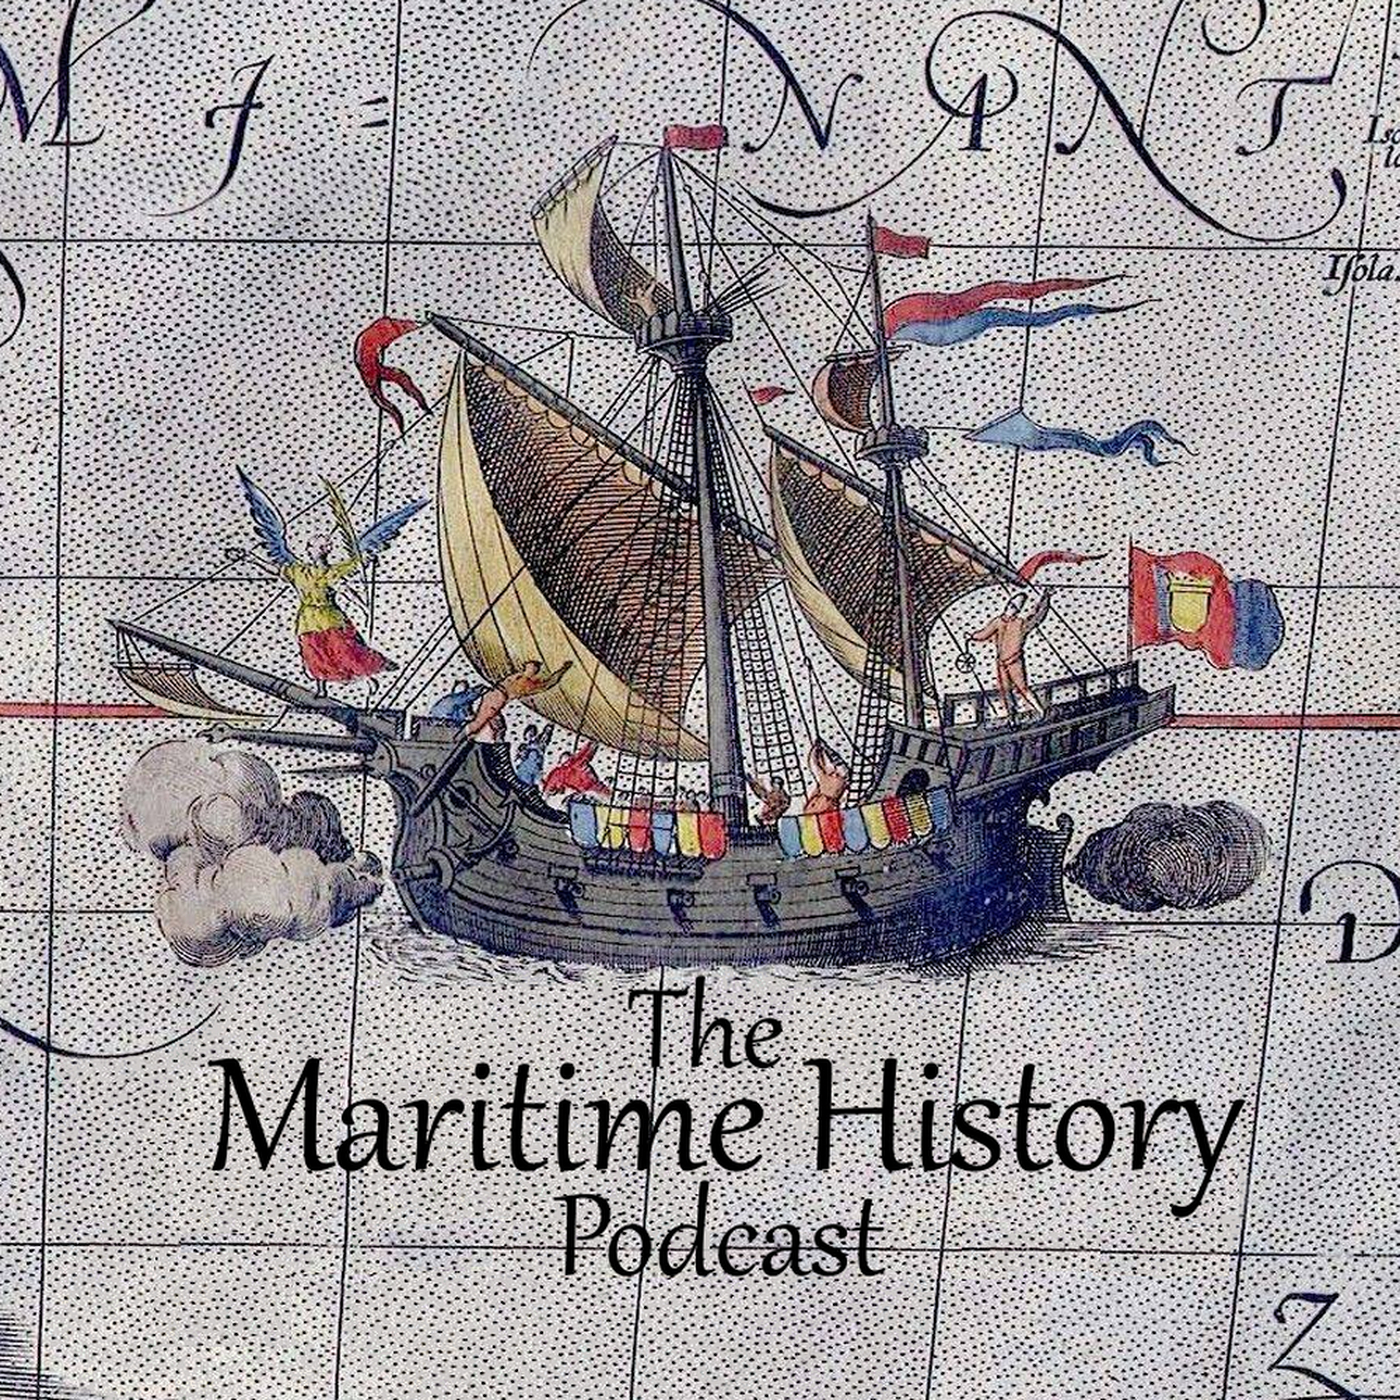 009 - The New Kingdom: Maritime War and Maritime Peace